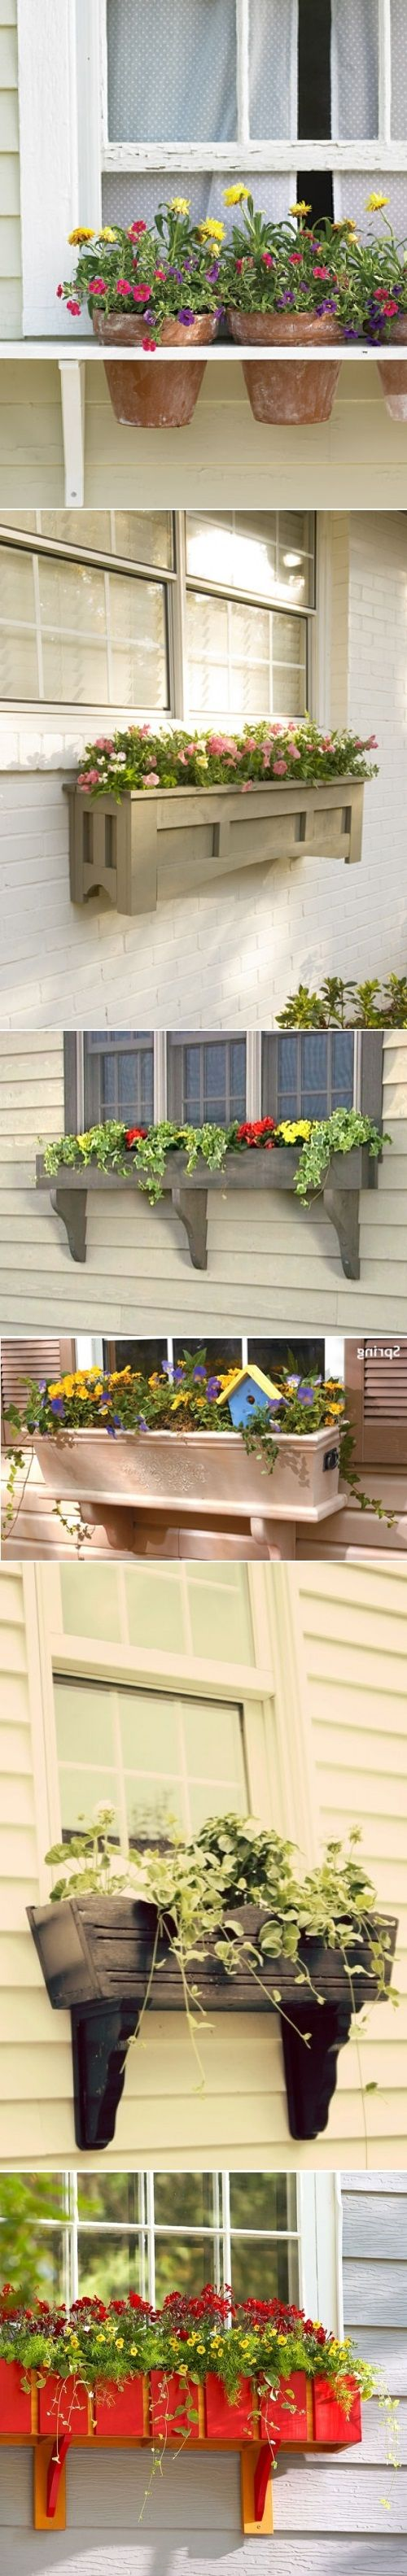 DIY Window Boxes for Flowers